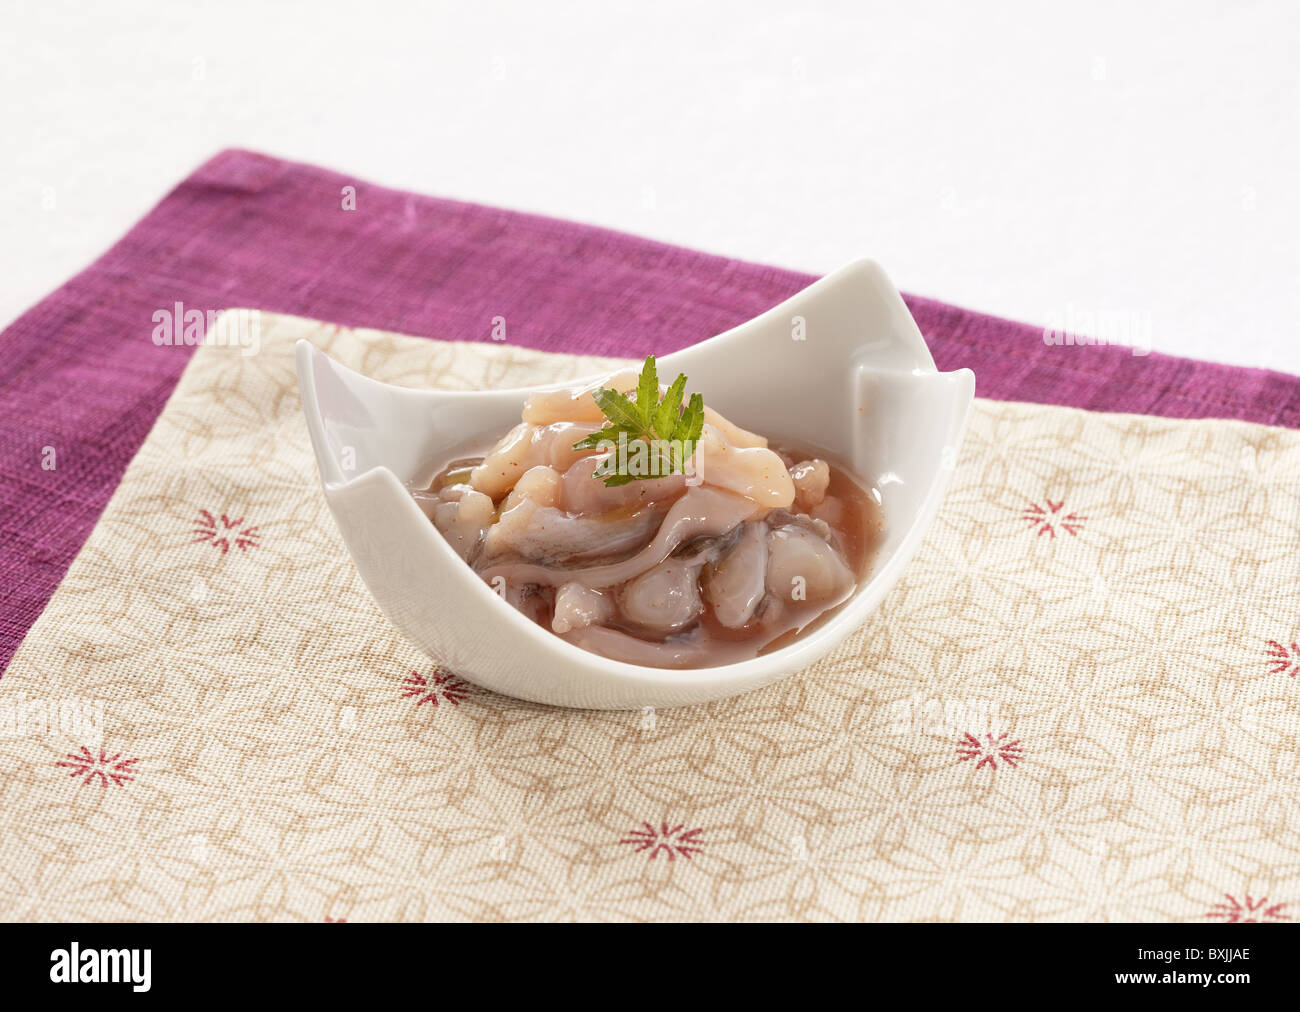 Fermented octopus flavored with wasabi - Stock Image